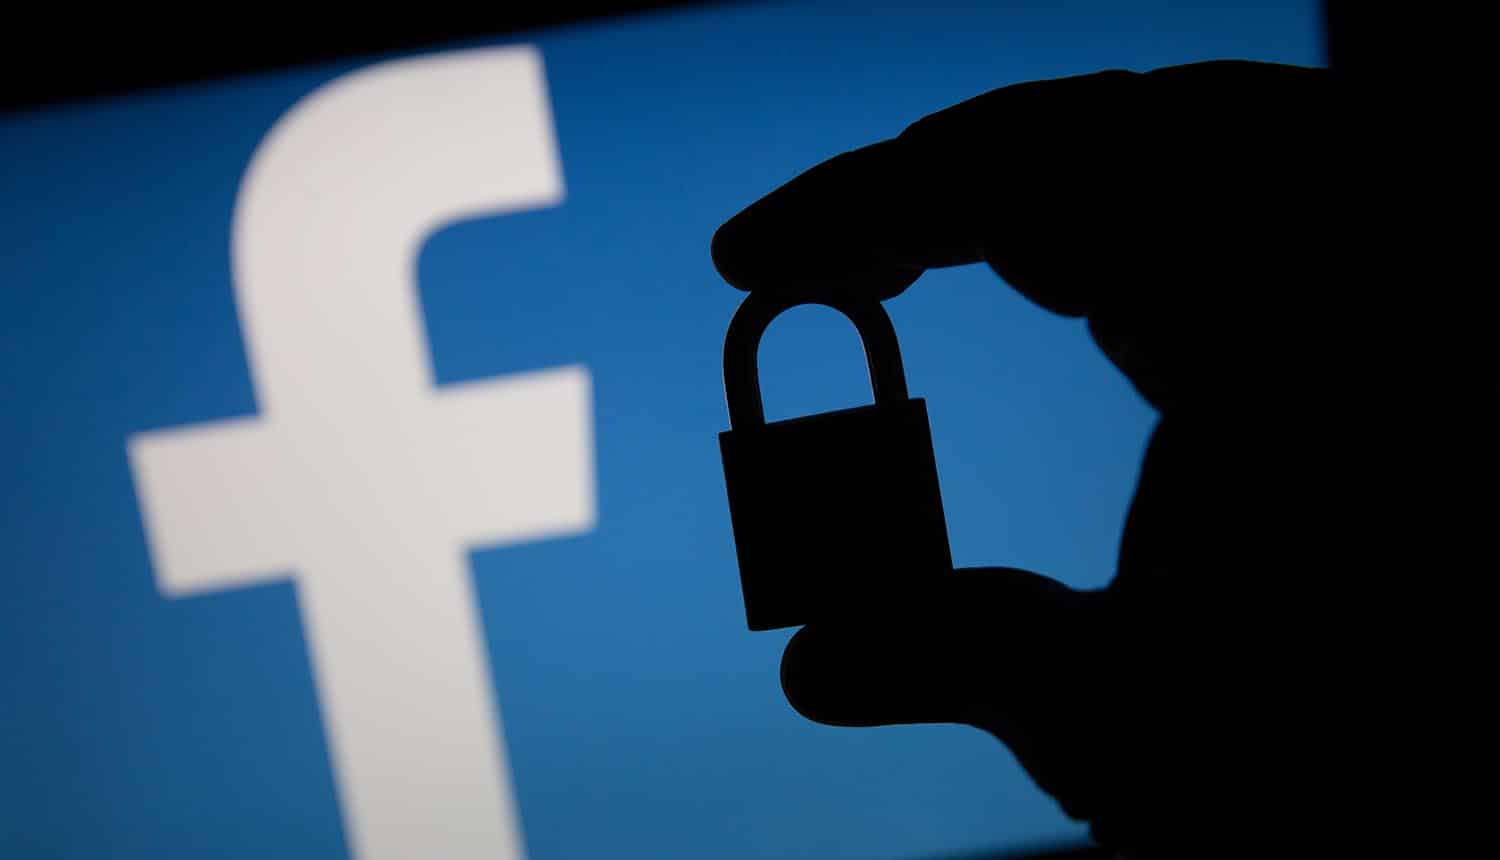 Security Flaw by Facebook